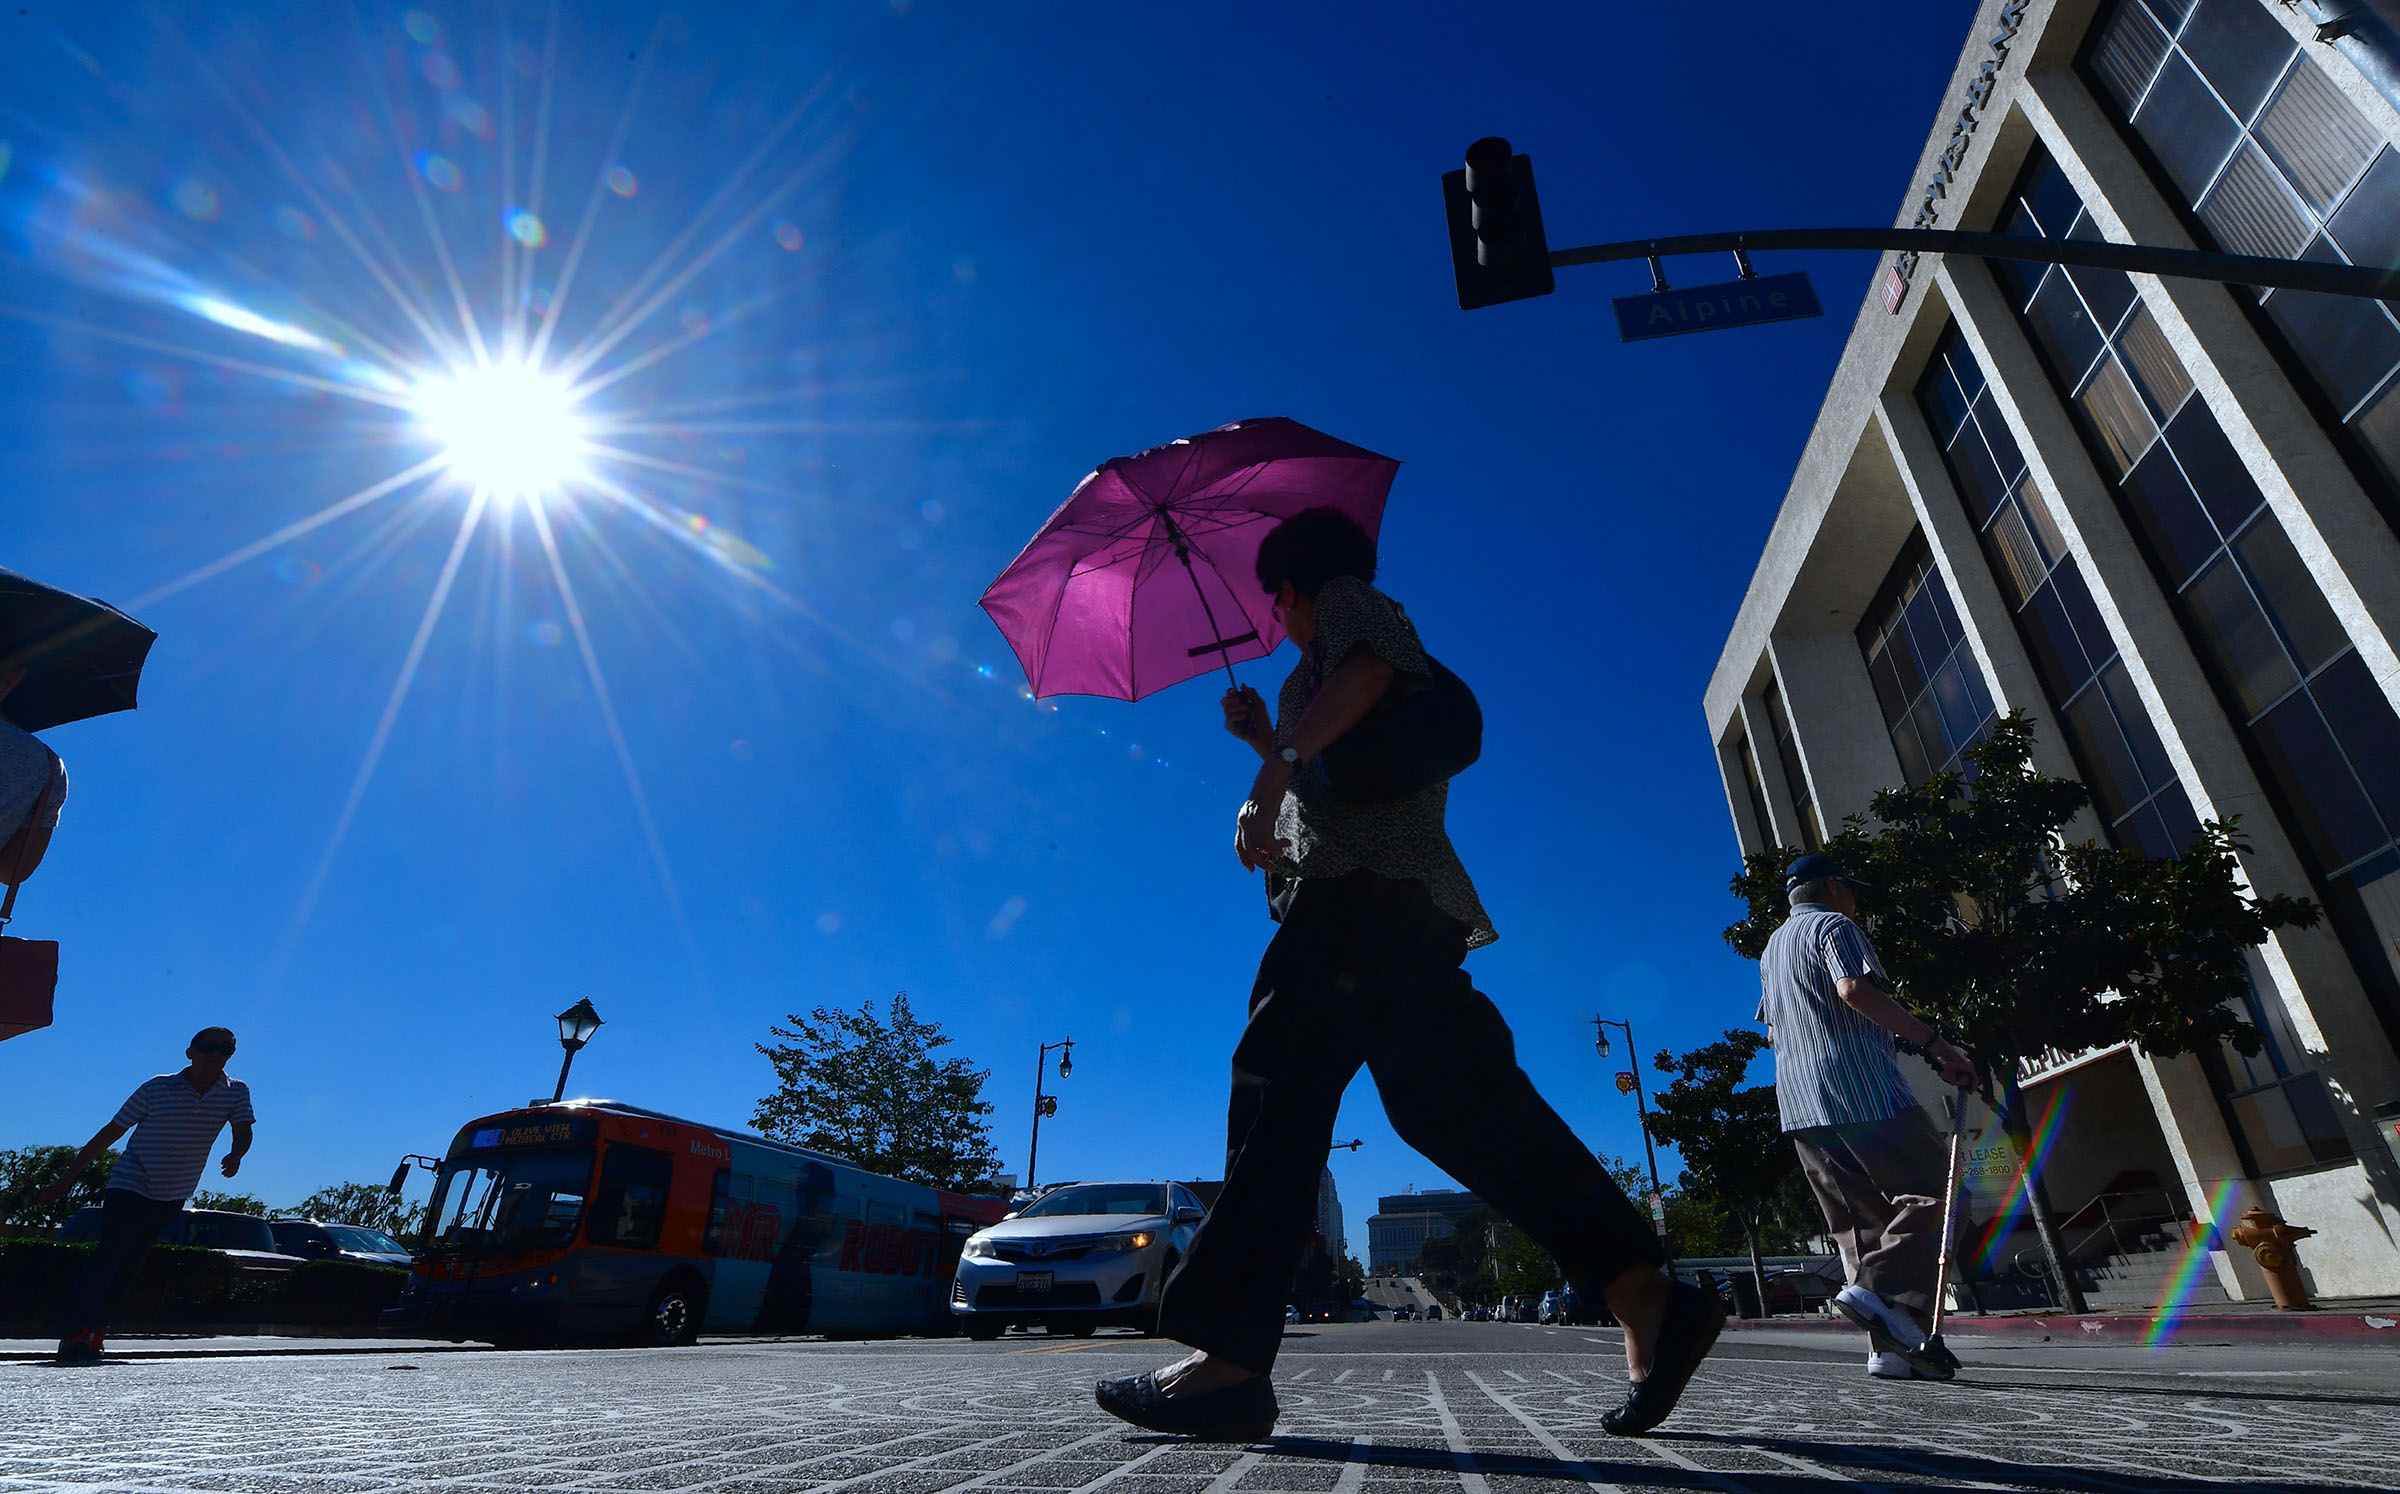 A pedestrian uses an umbrella on a hot sunny morning in Los Angeles on October 24, 2017 amid a late season heatwave hitting southern California.